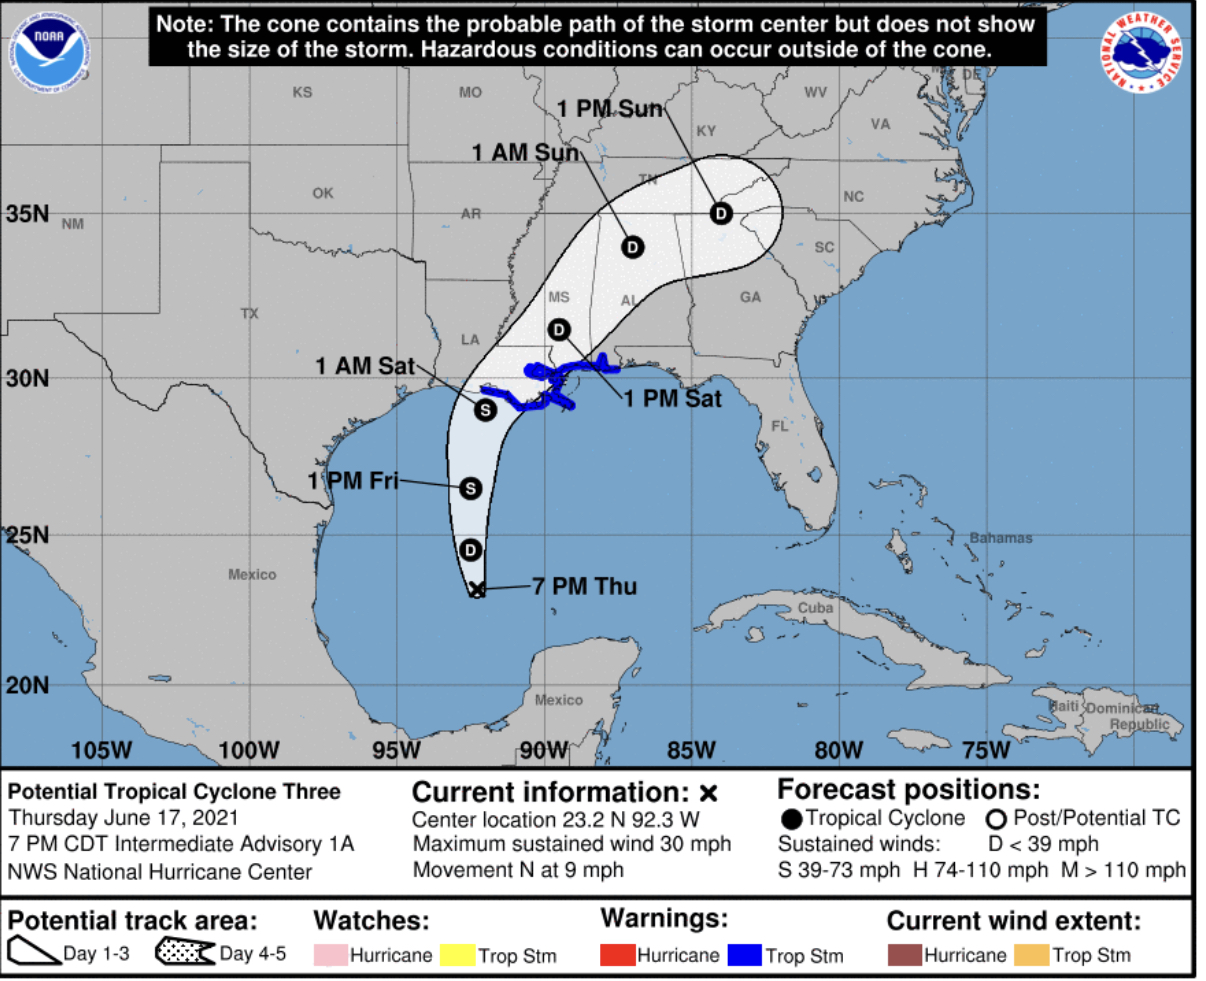 Potential tropical cyclone 3